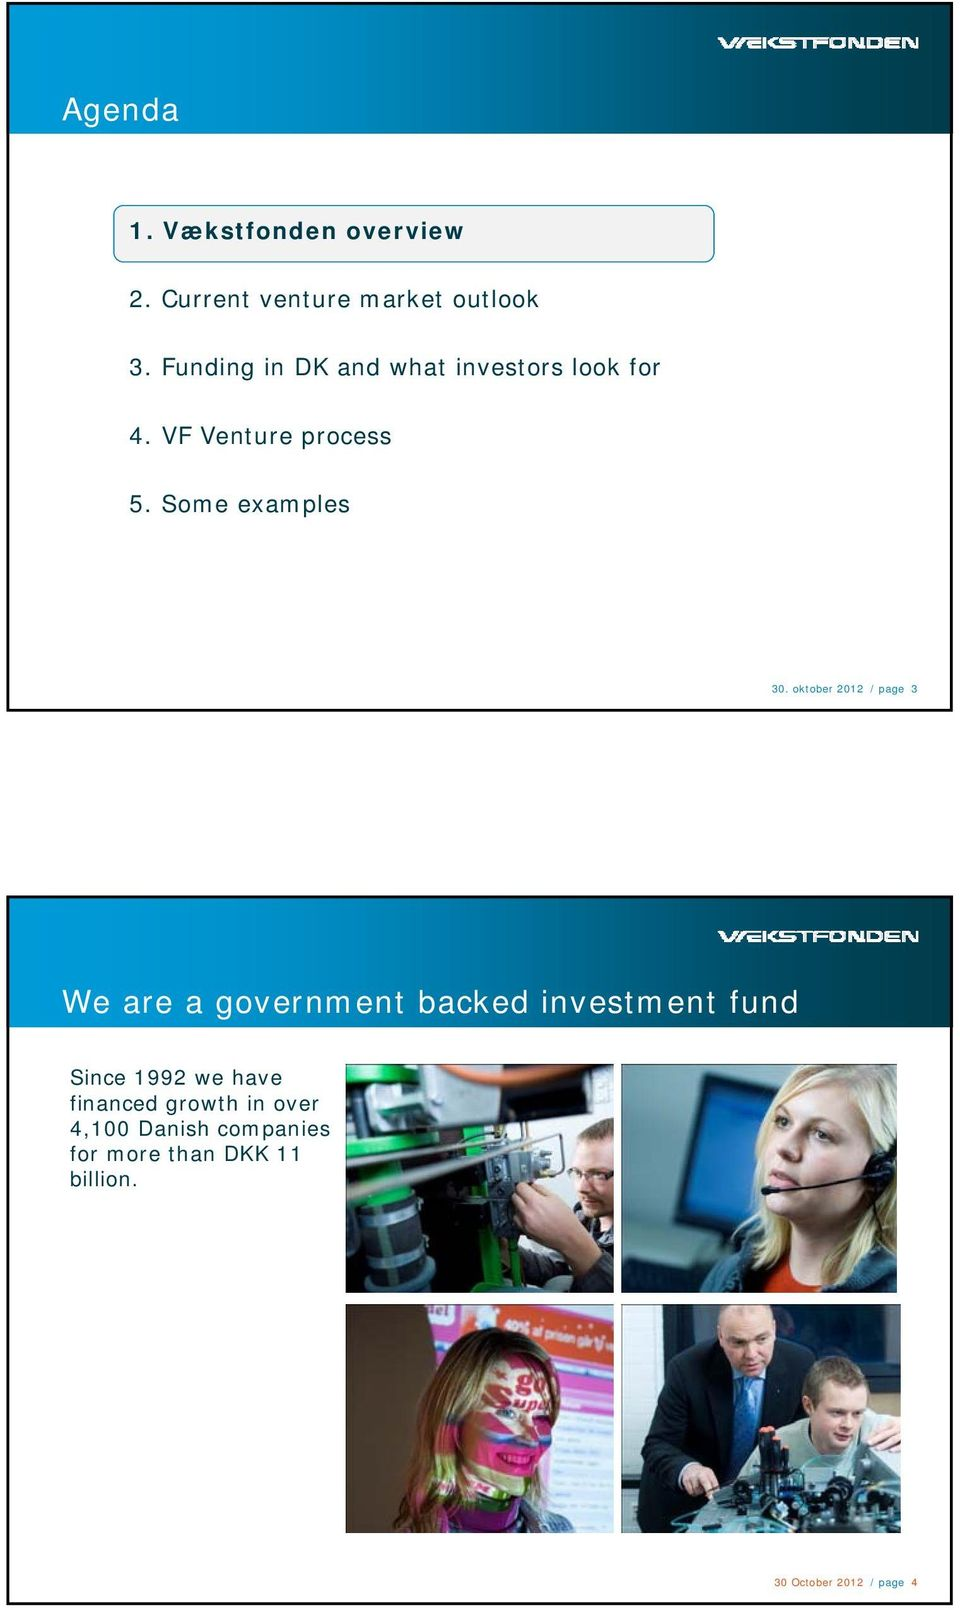 oktober 2012 / page 3 We are a government backed investment fund Since 1992 we have